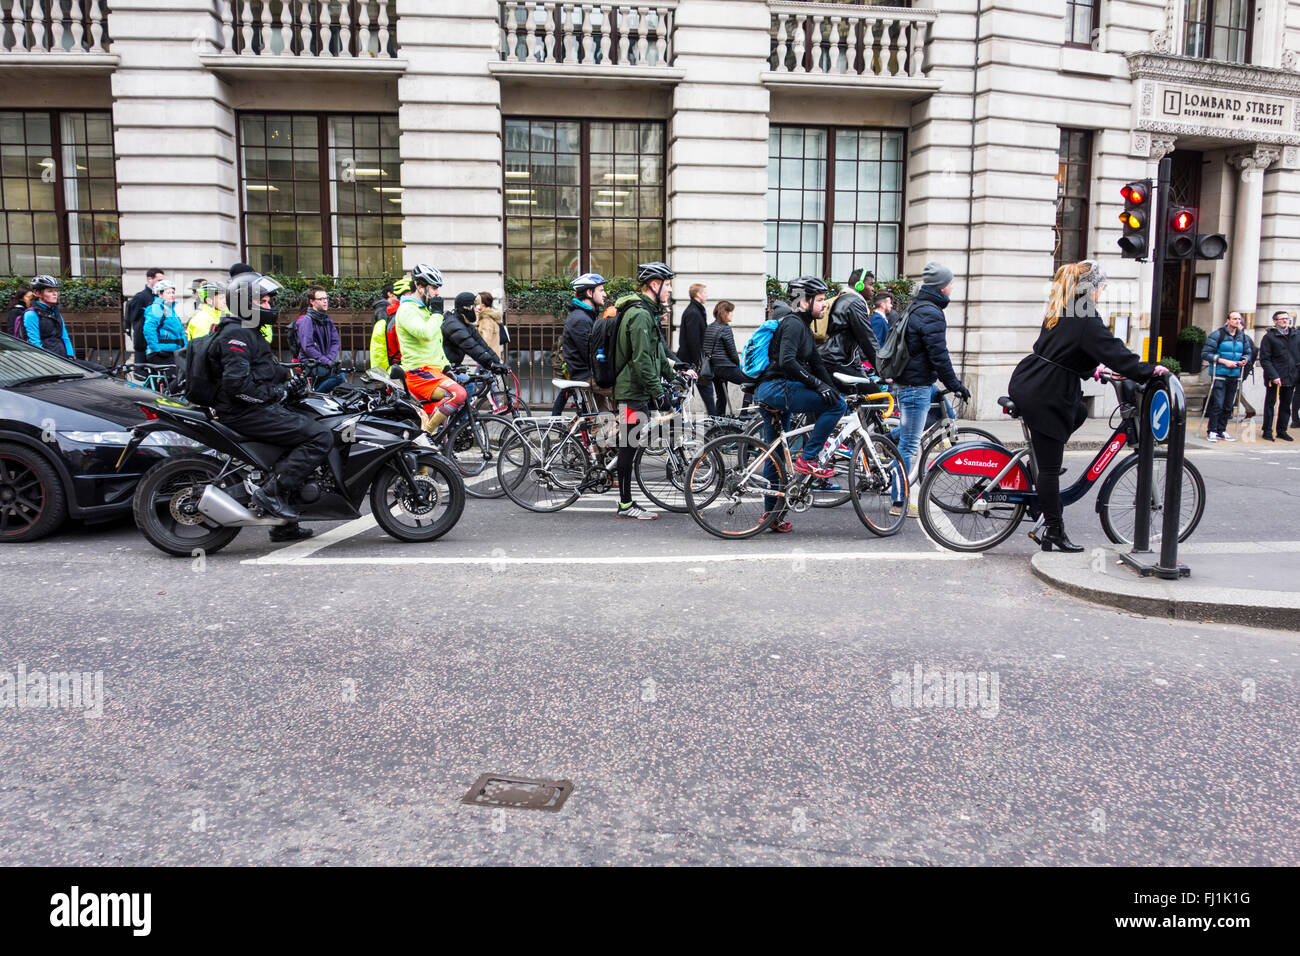 Cyclists waiting in bike box or Advanced Stop Line (ASL) at red traffic lights, Bank junction, London UK - Stock Image